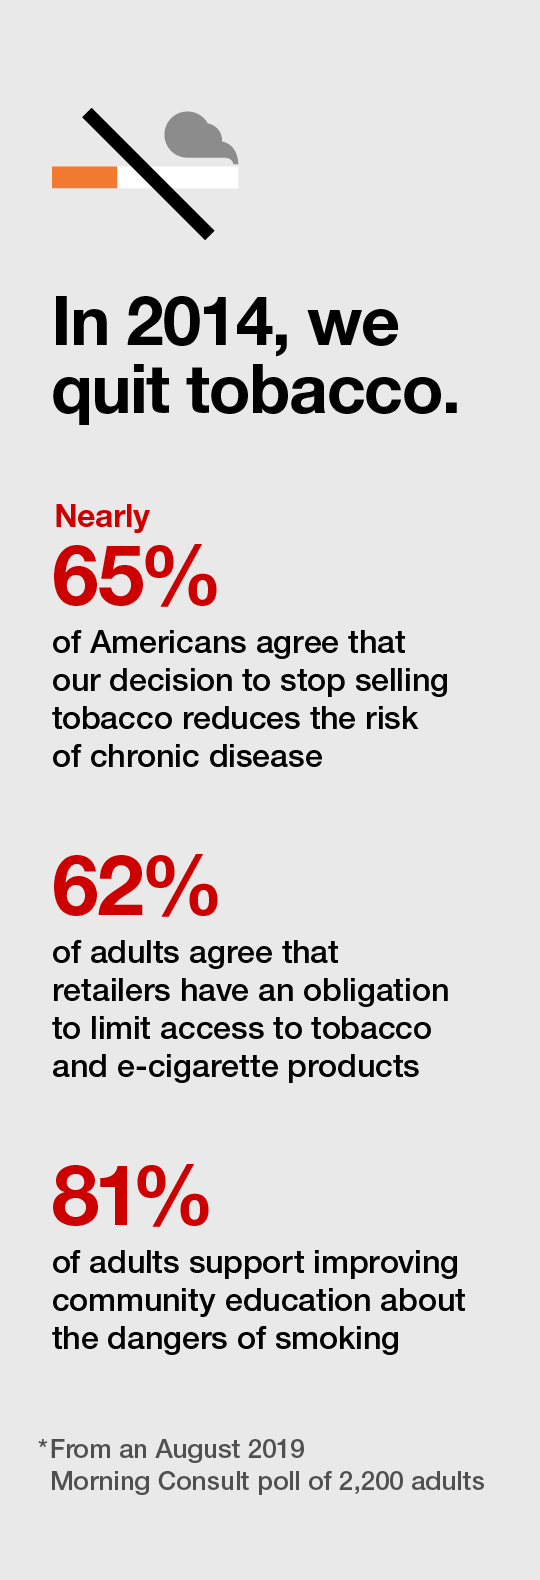 In 2014, we quit tobacco. Nearly 65% of Americans agree that our decision to stop selling tobacco reduces the risk of chronic disease. 62% of adults agree that retailers have an obligation to limit access to tobacco and e-cigarette products. 81% of adults support improving community education about the dangers of smoking.